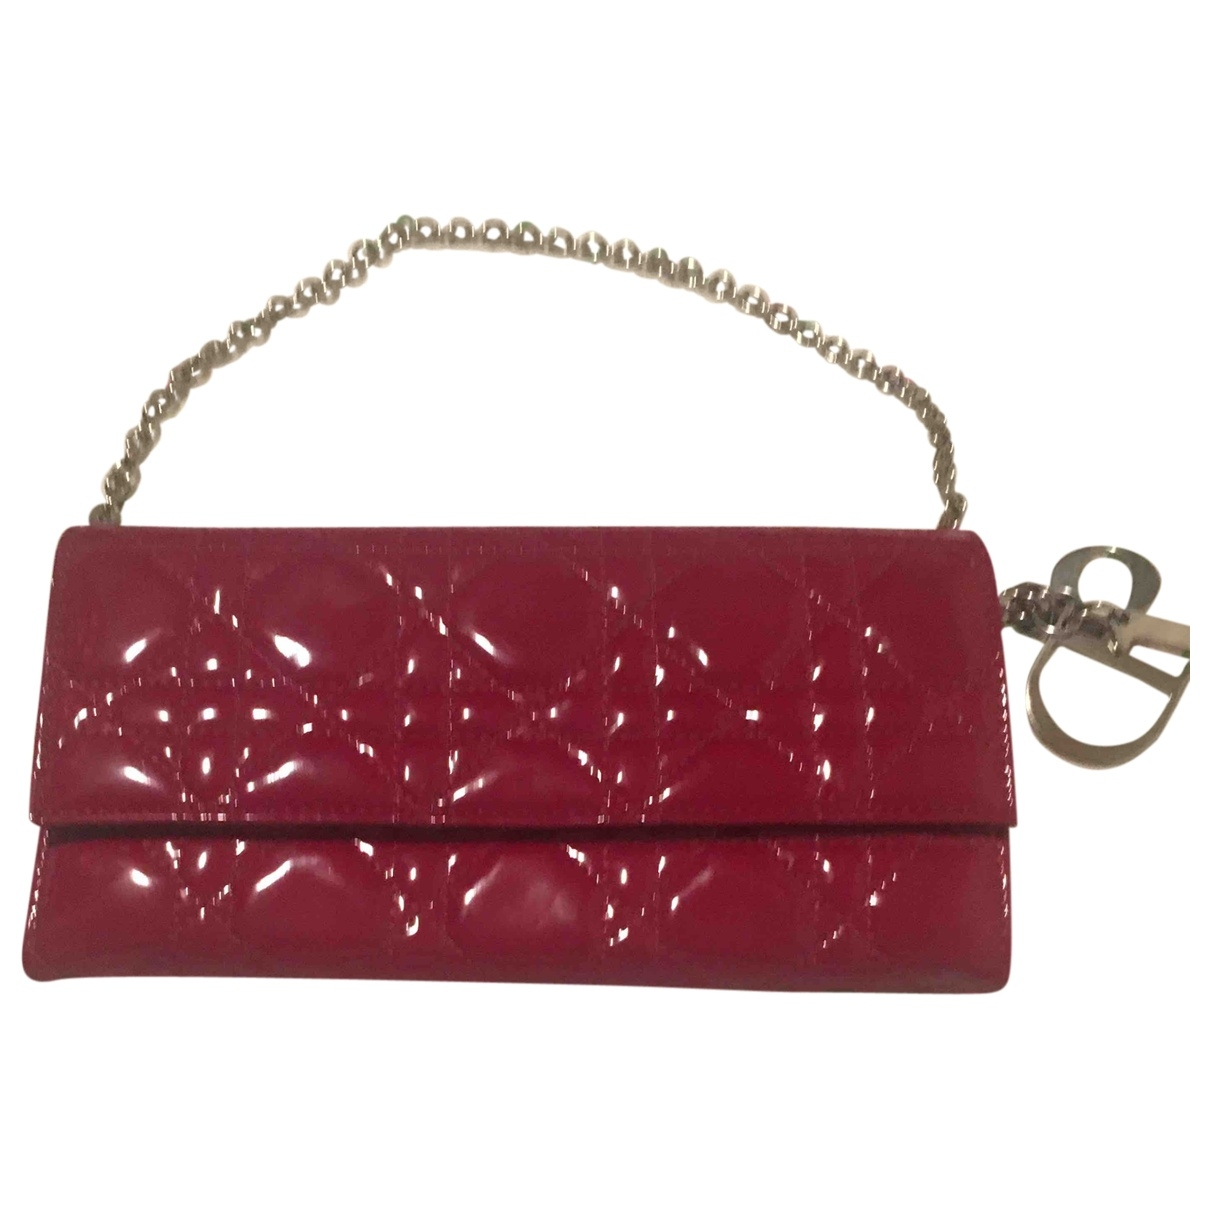 Christian Dior \N Red Patent leather Clutch bag for Women \N